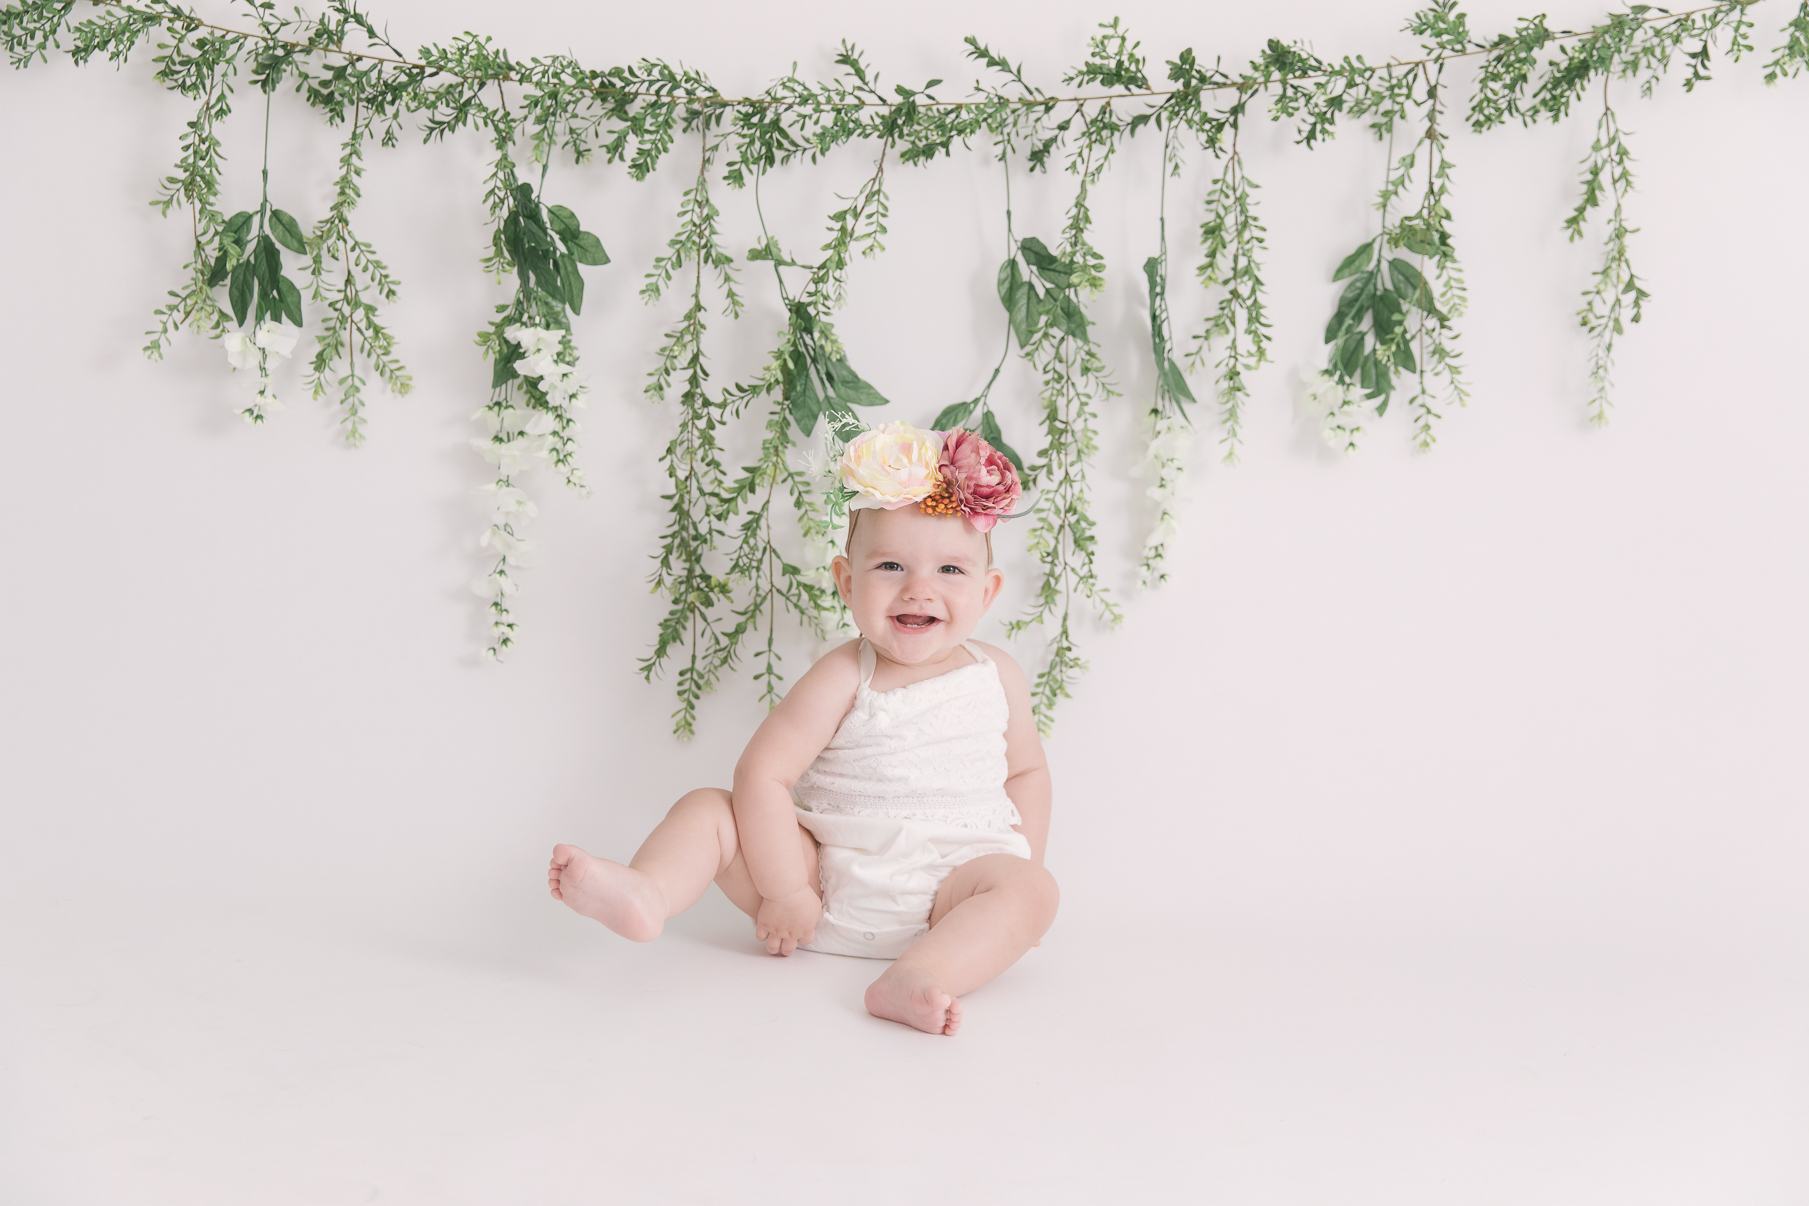 studio-milestone-session-three-six-nine-sessions-first-year-sessions-by-christie-leigh-photo-maternity-and-newborn-photographer-9.JPG